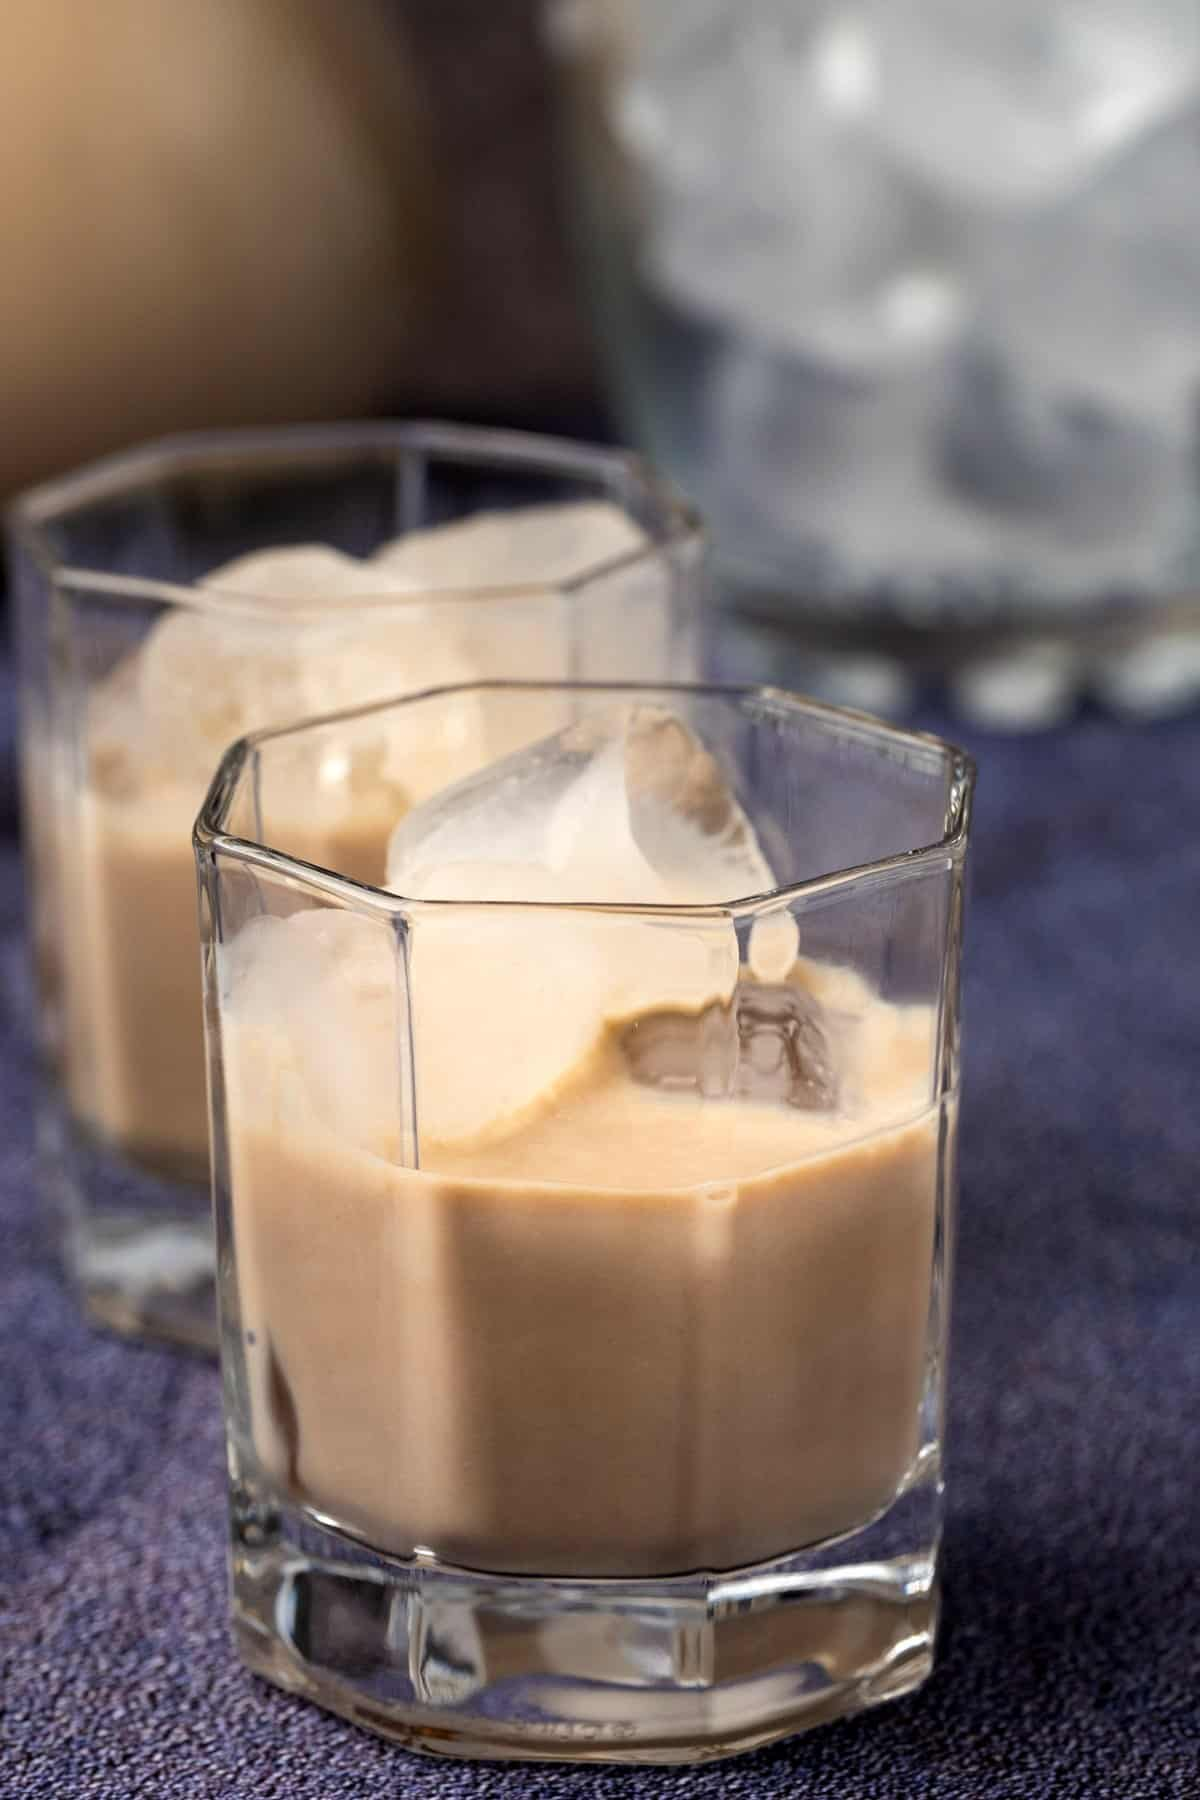 Homemade Irish cream in a glass with ice.